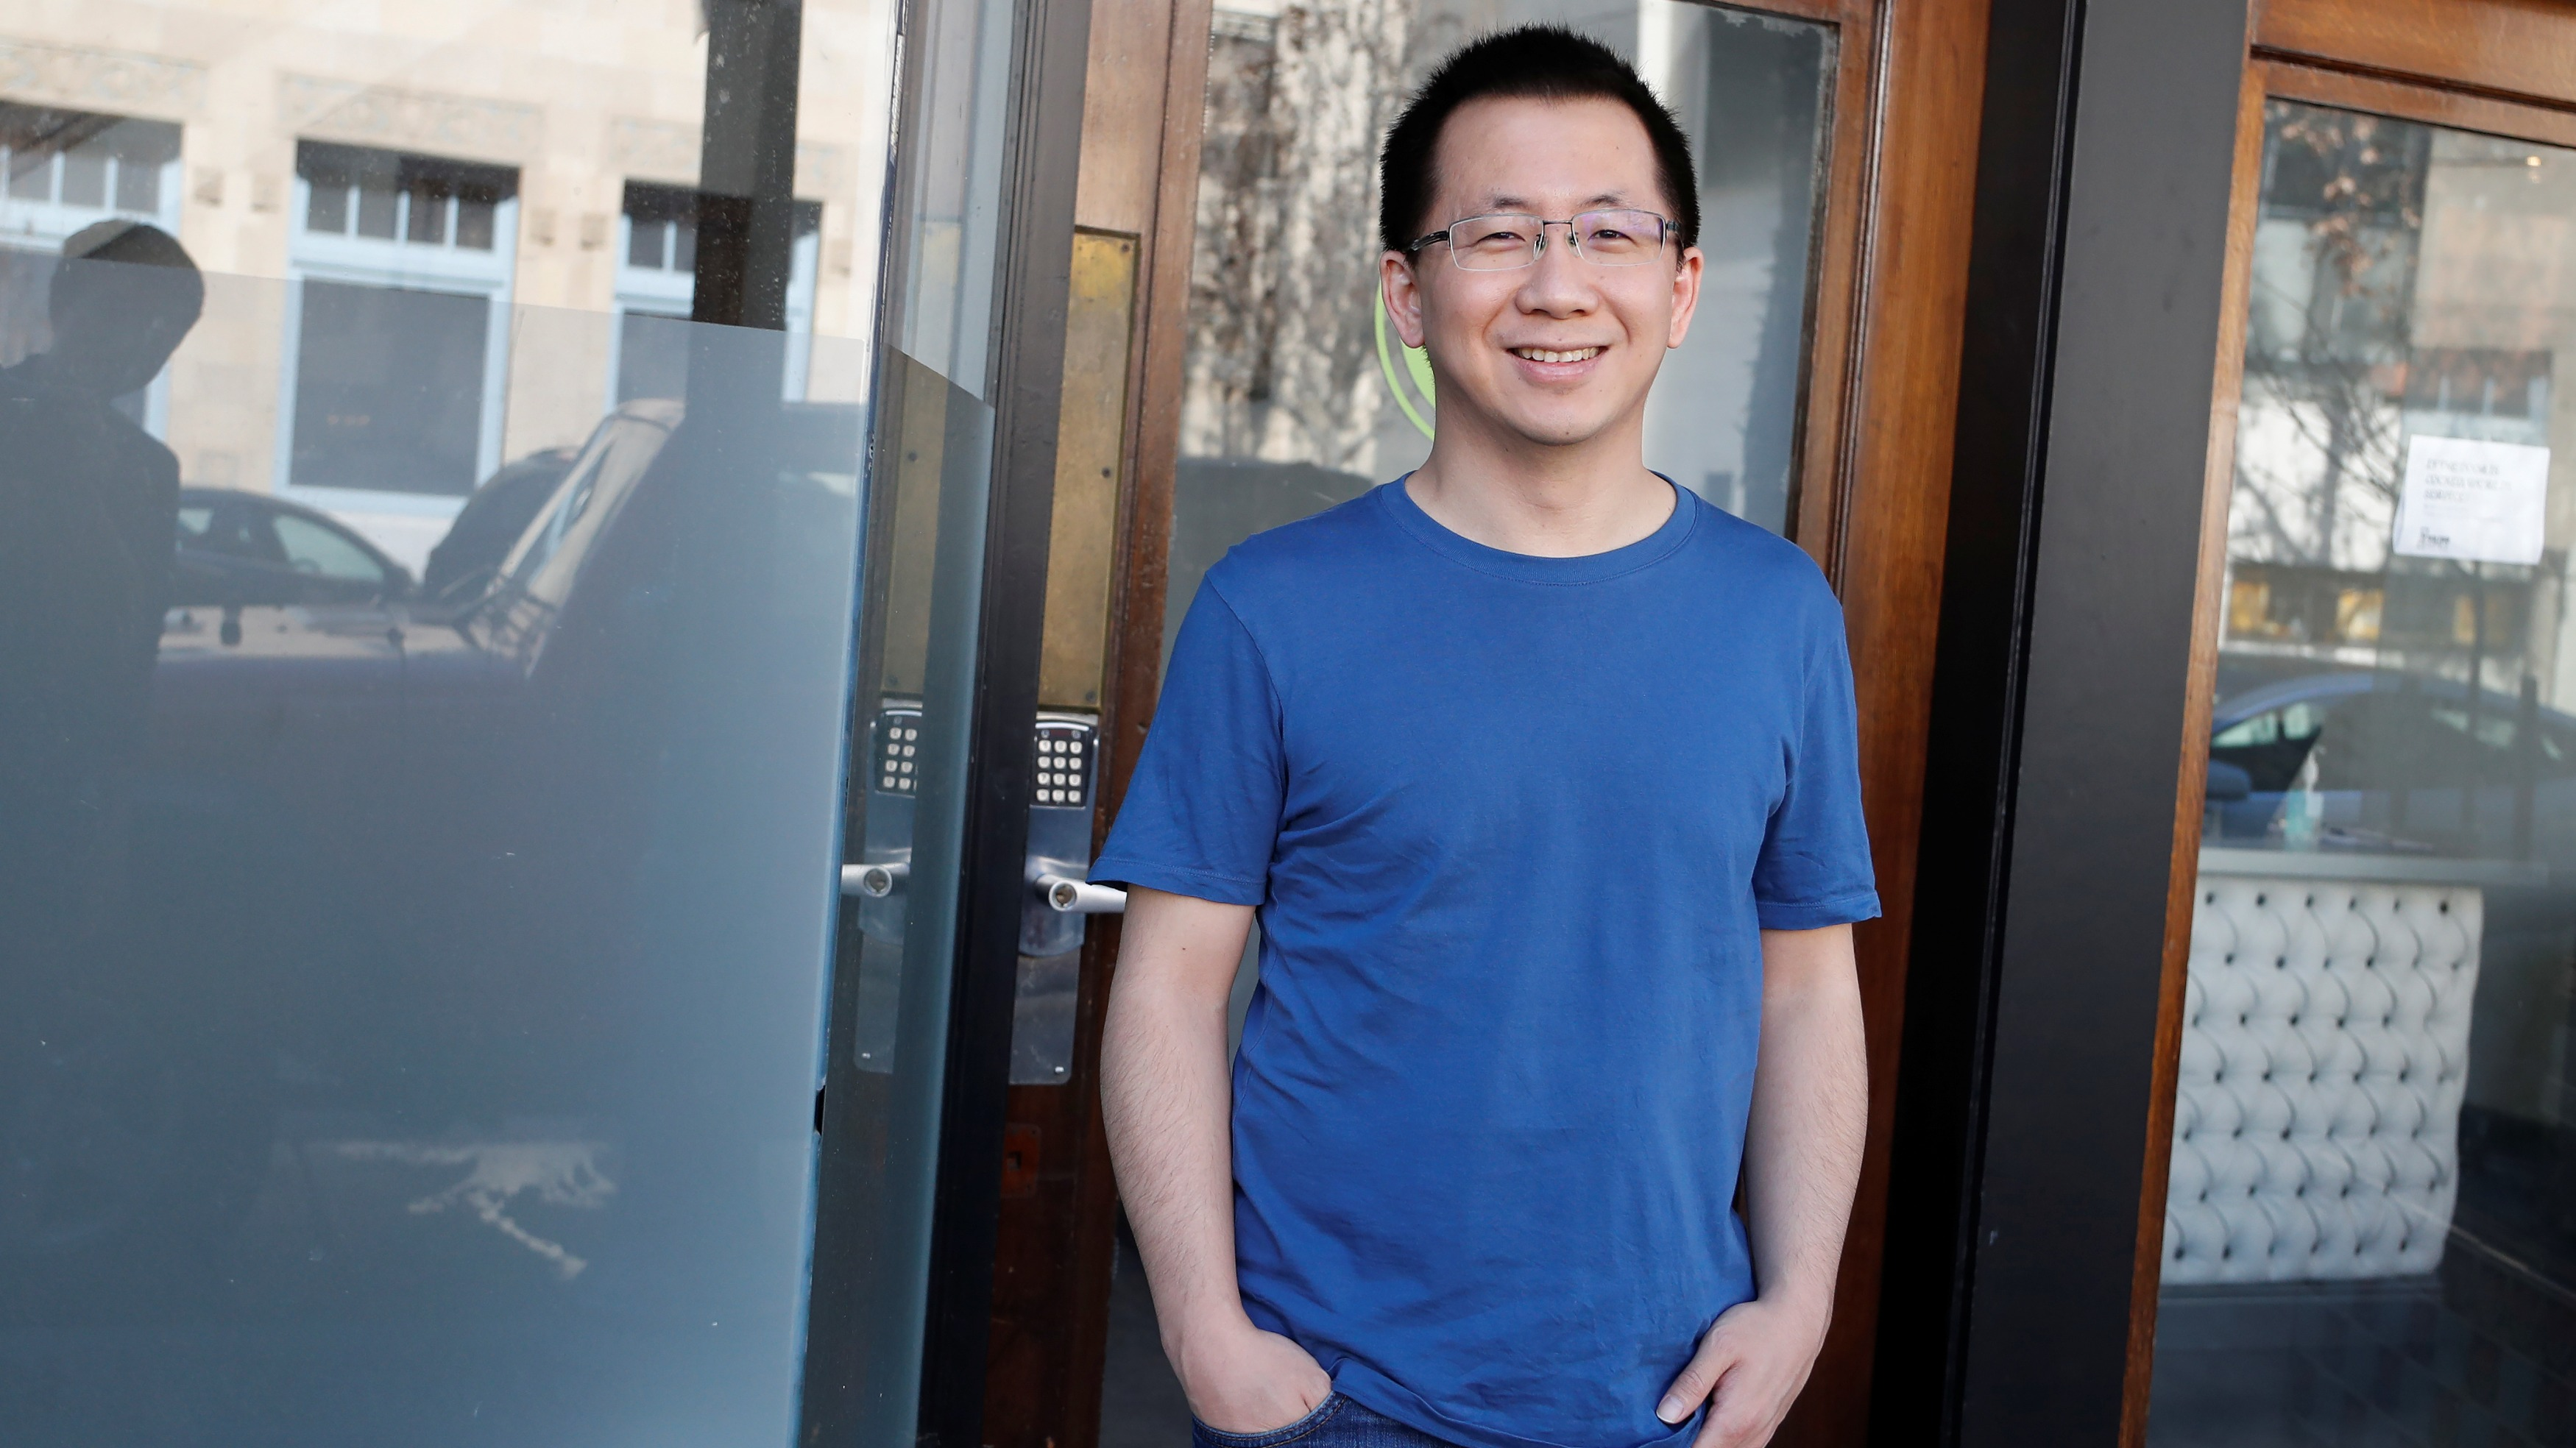 ByteDance co-founder Zhang Yiming to hand over CEO role - Nikkei Asia